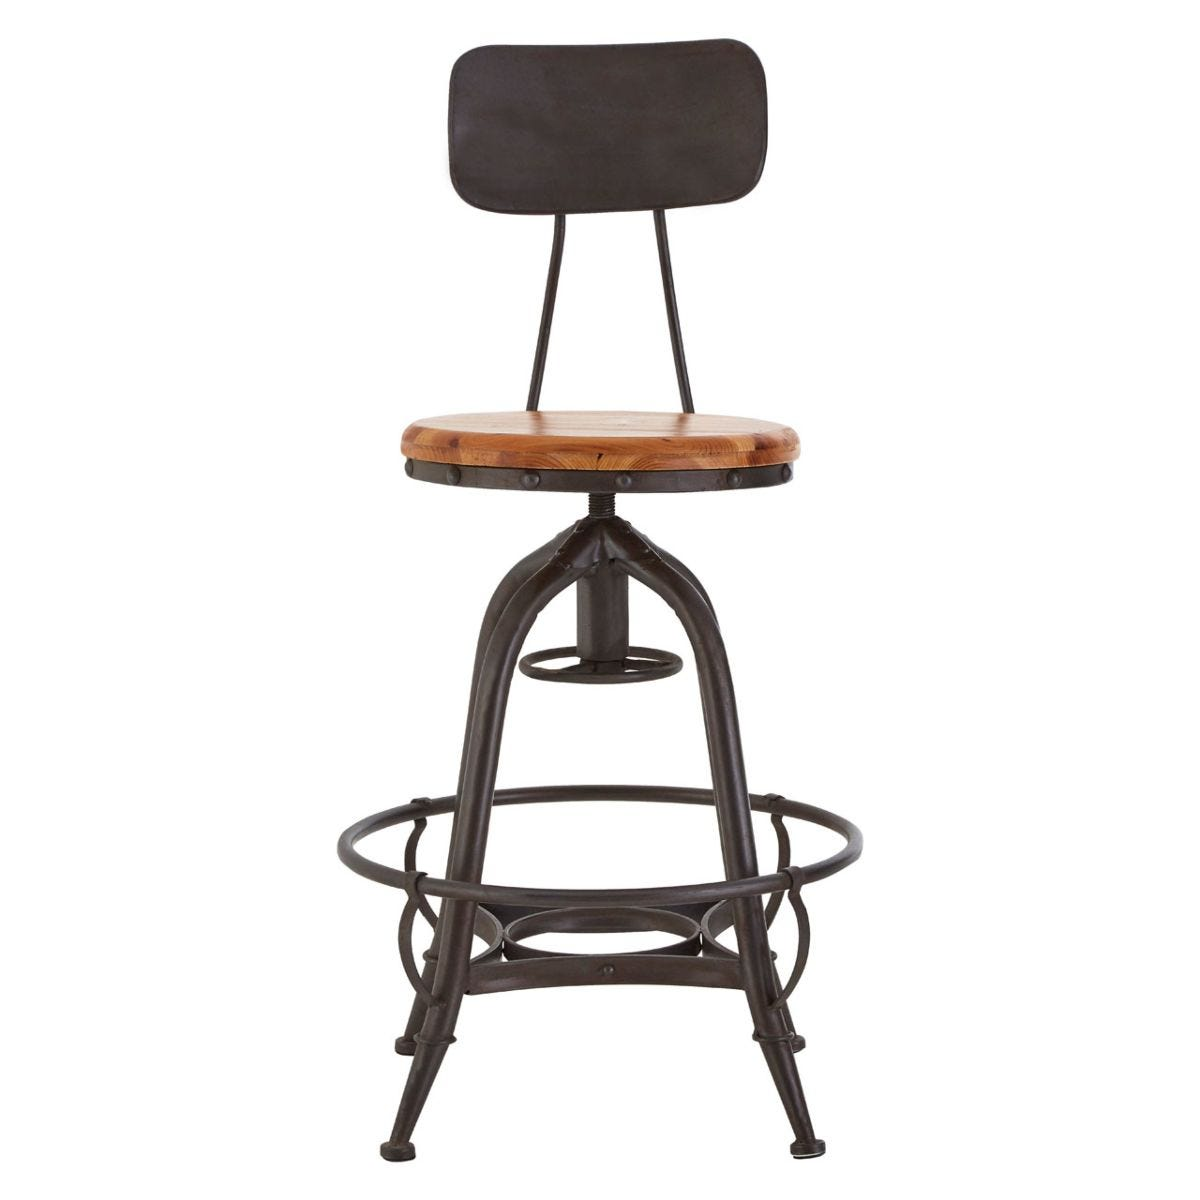 New Foundry Bar Chair With Adjustable Height